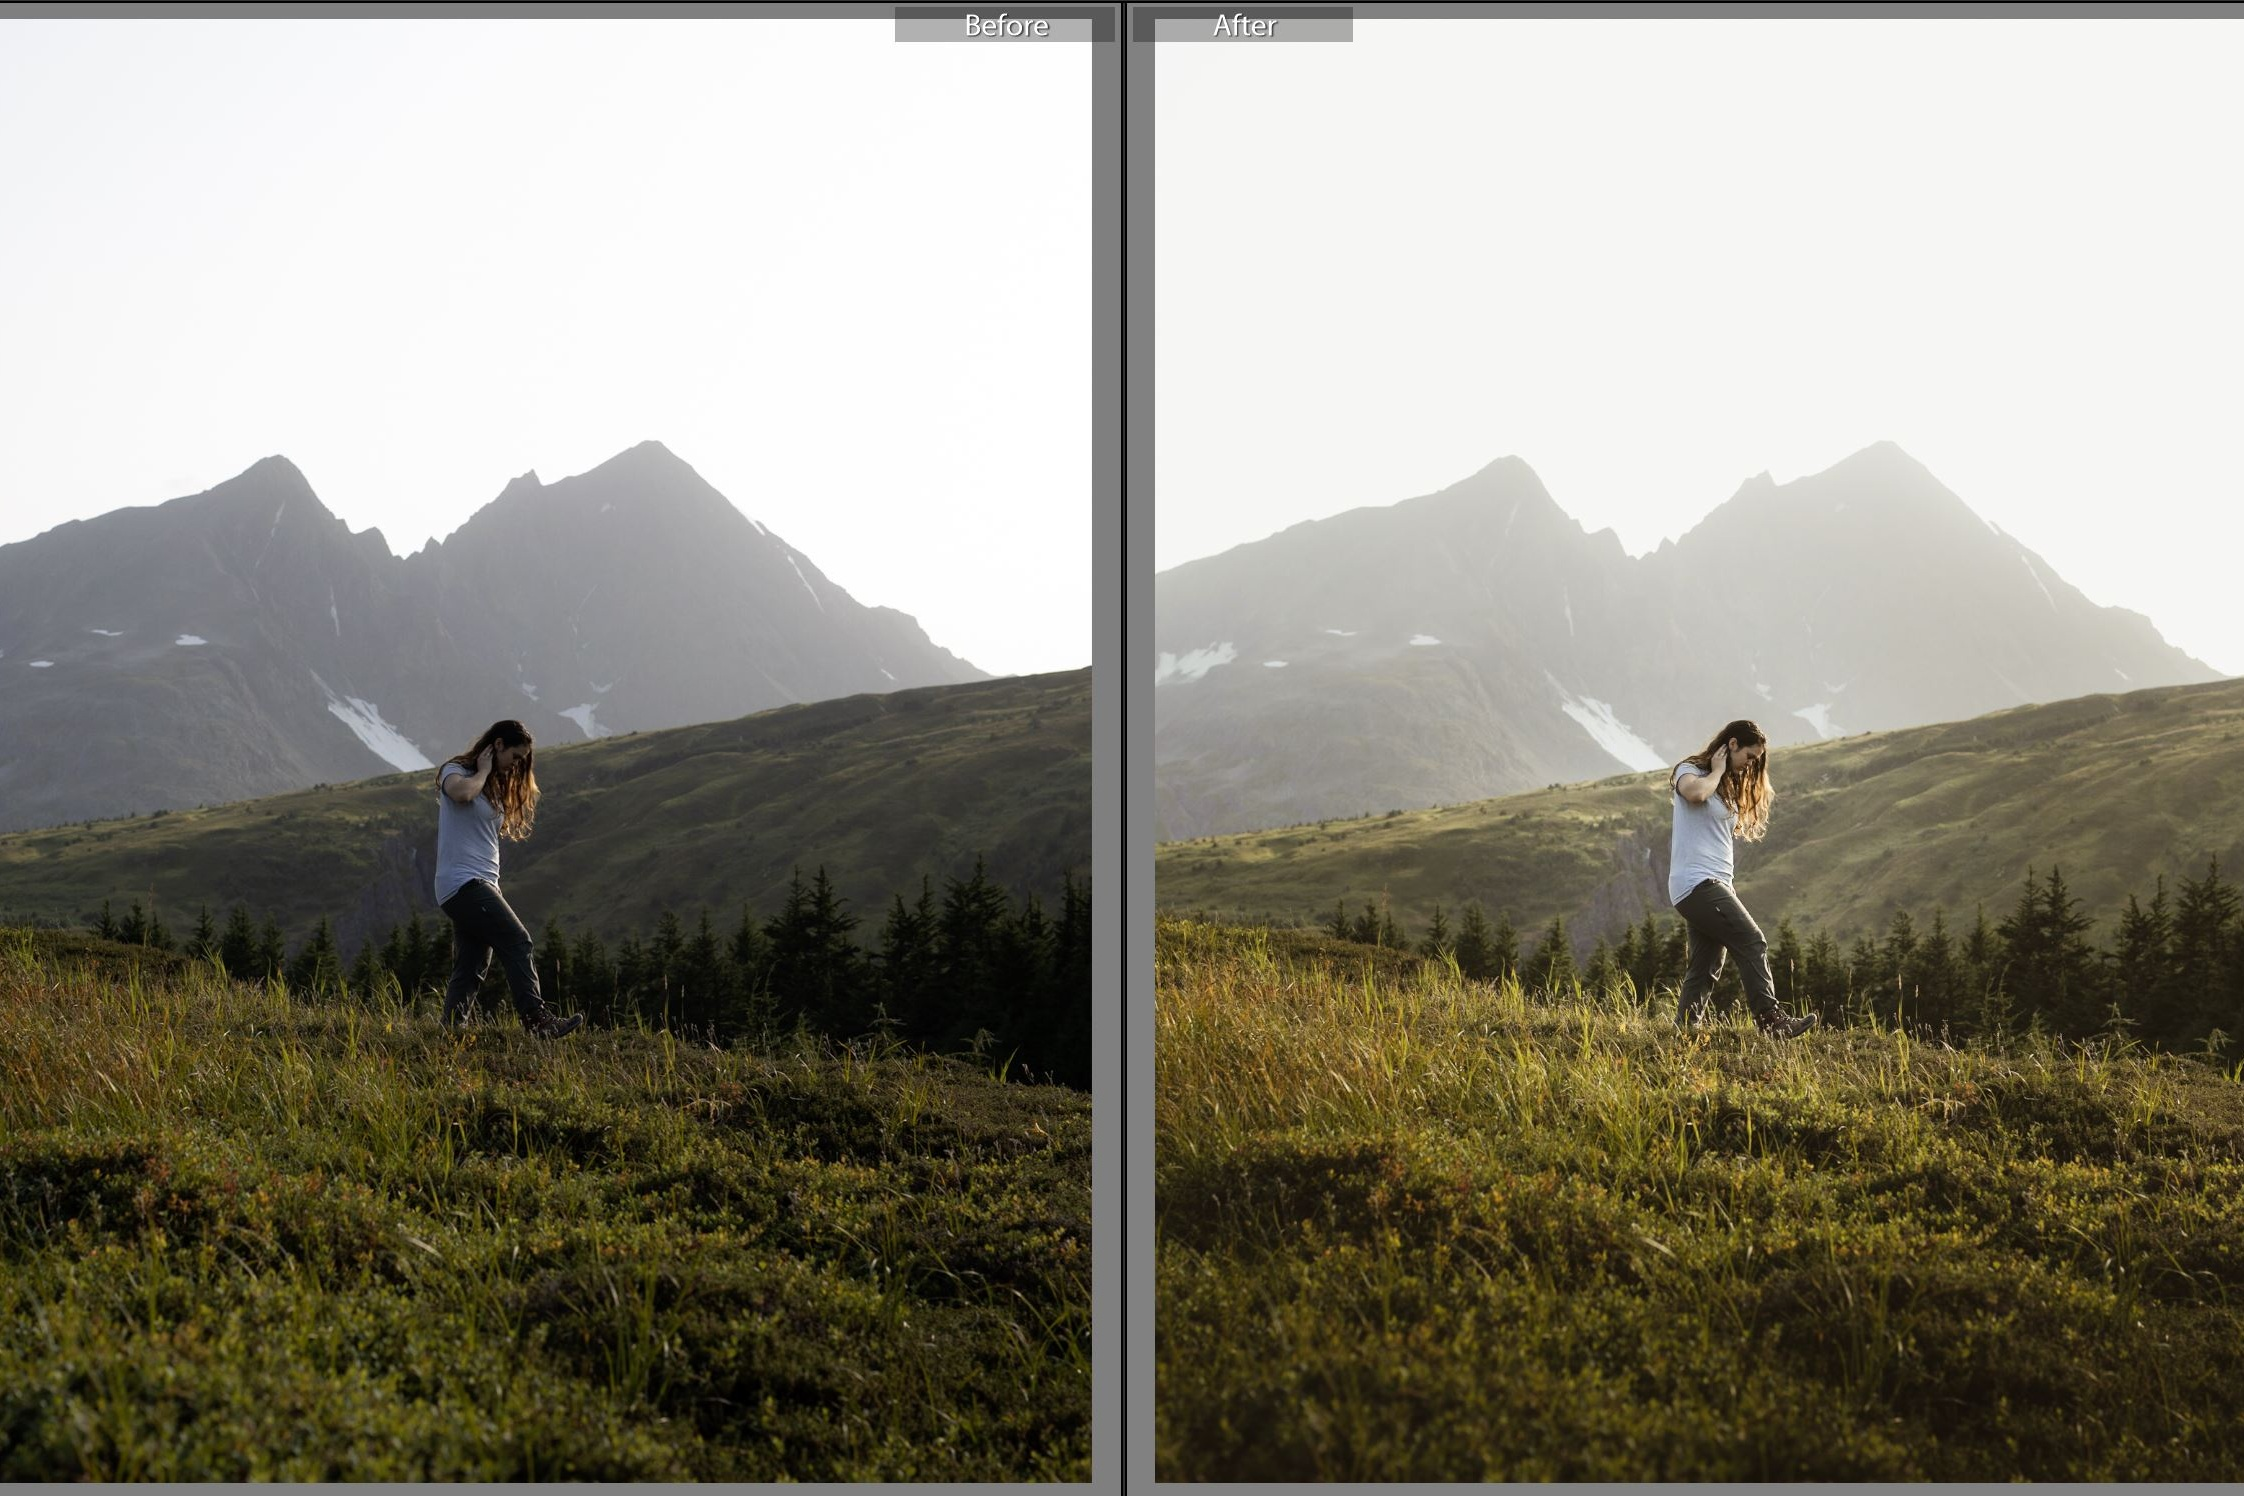 Lightroom Presets - My unique preset pack that delivers a natural, timeless style for Lightroom Classic and CC.